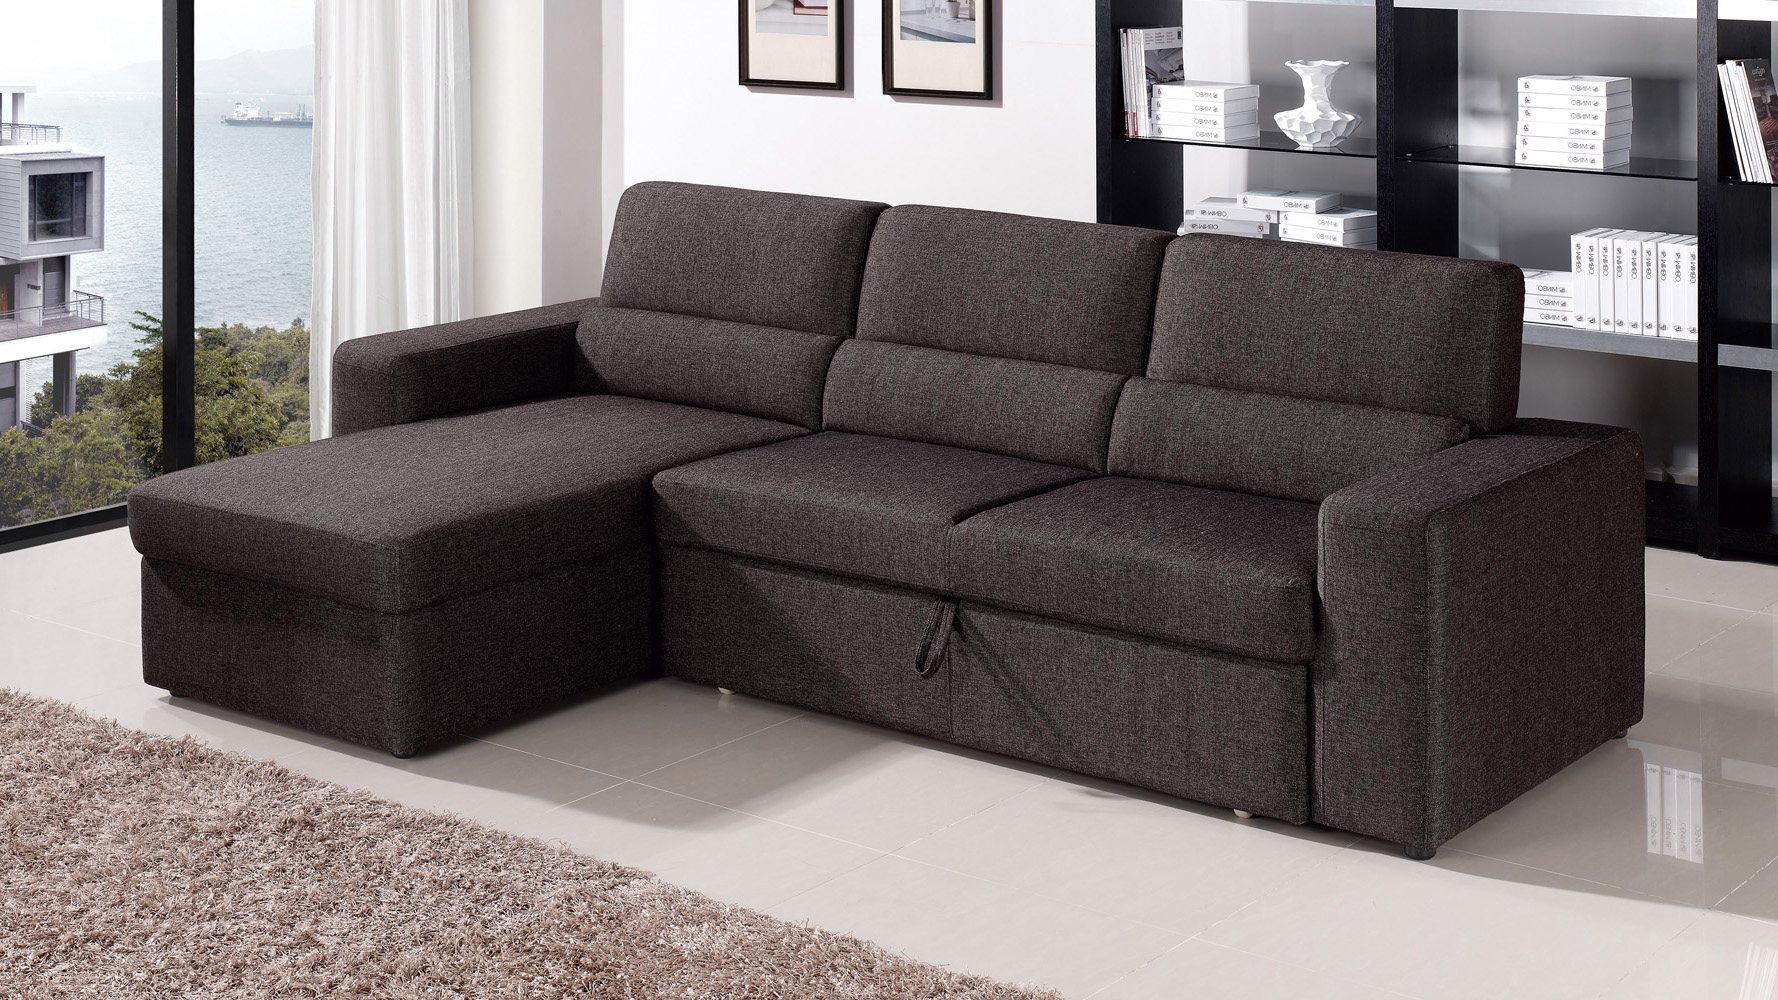 - Black/Brown Clubber Sleeper Sectional Sofa Zuri Furniture